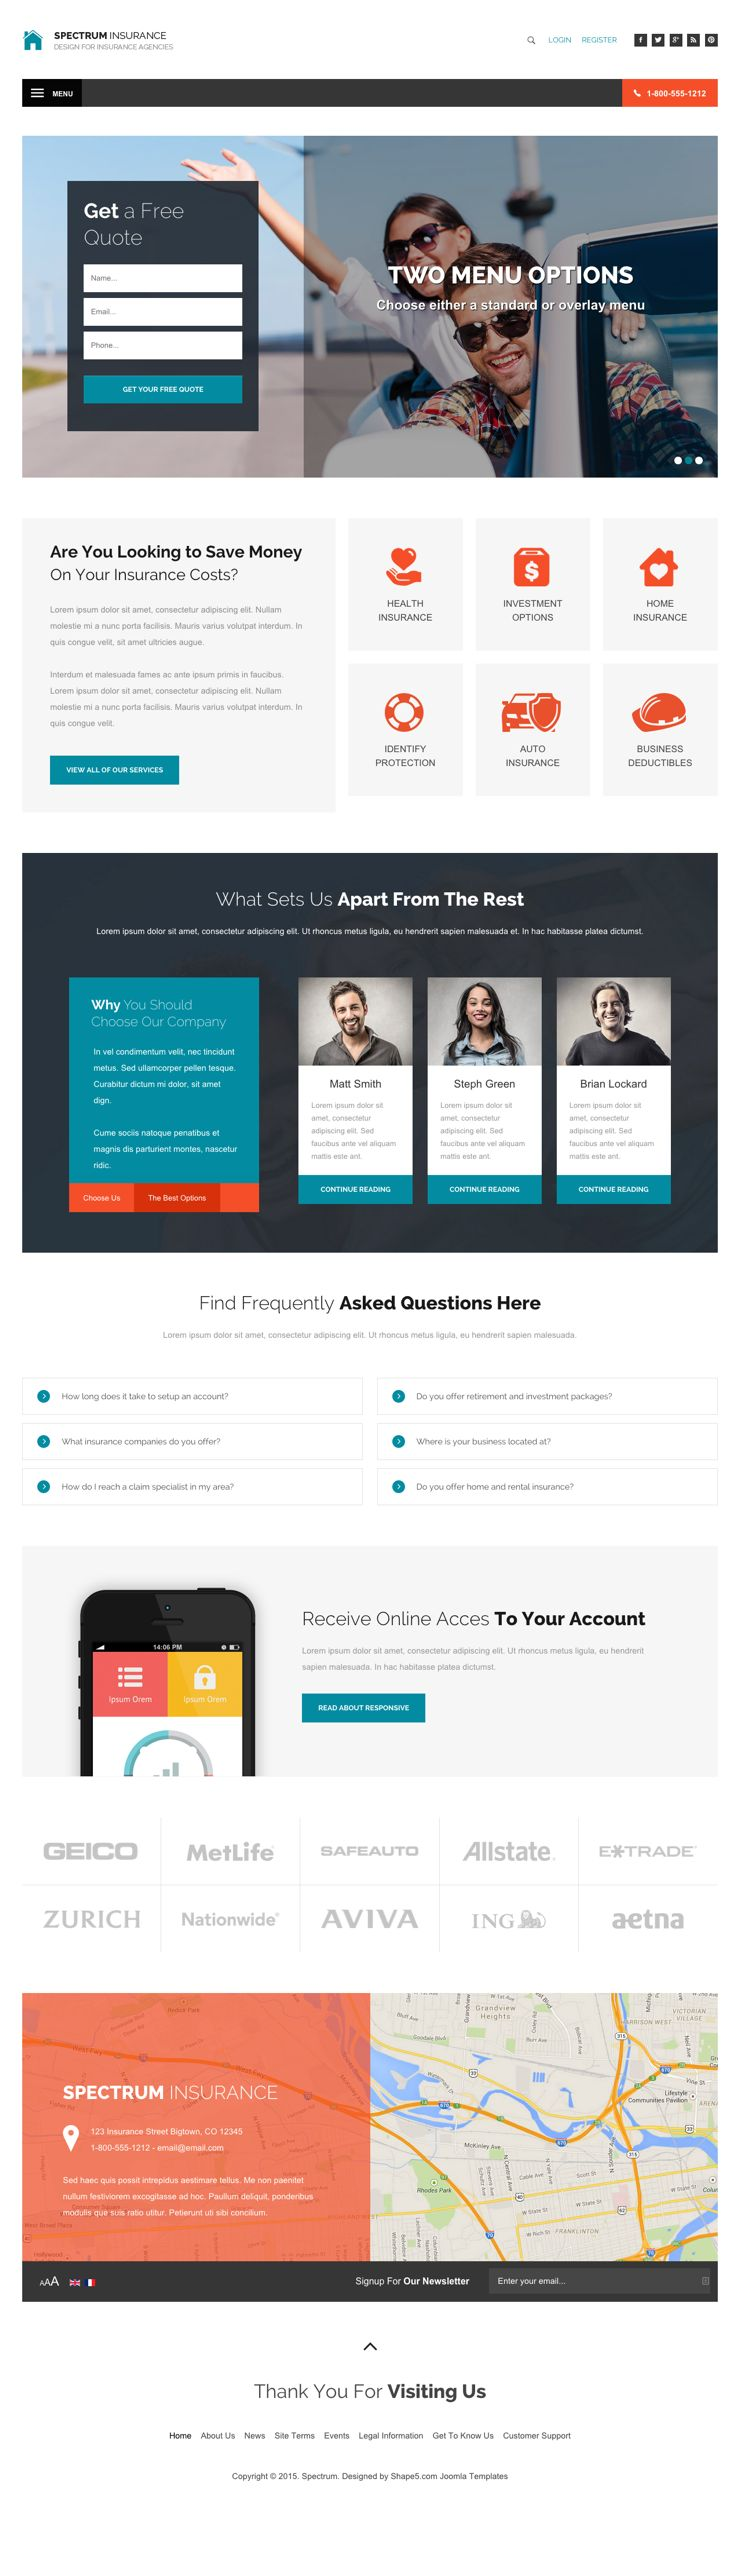 Spectrum joomla insurance company template for Joomla backend templates